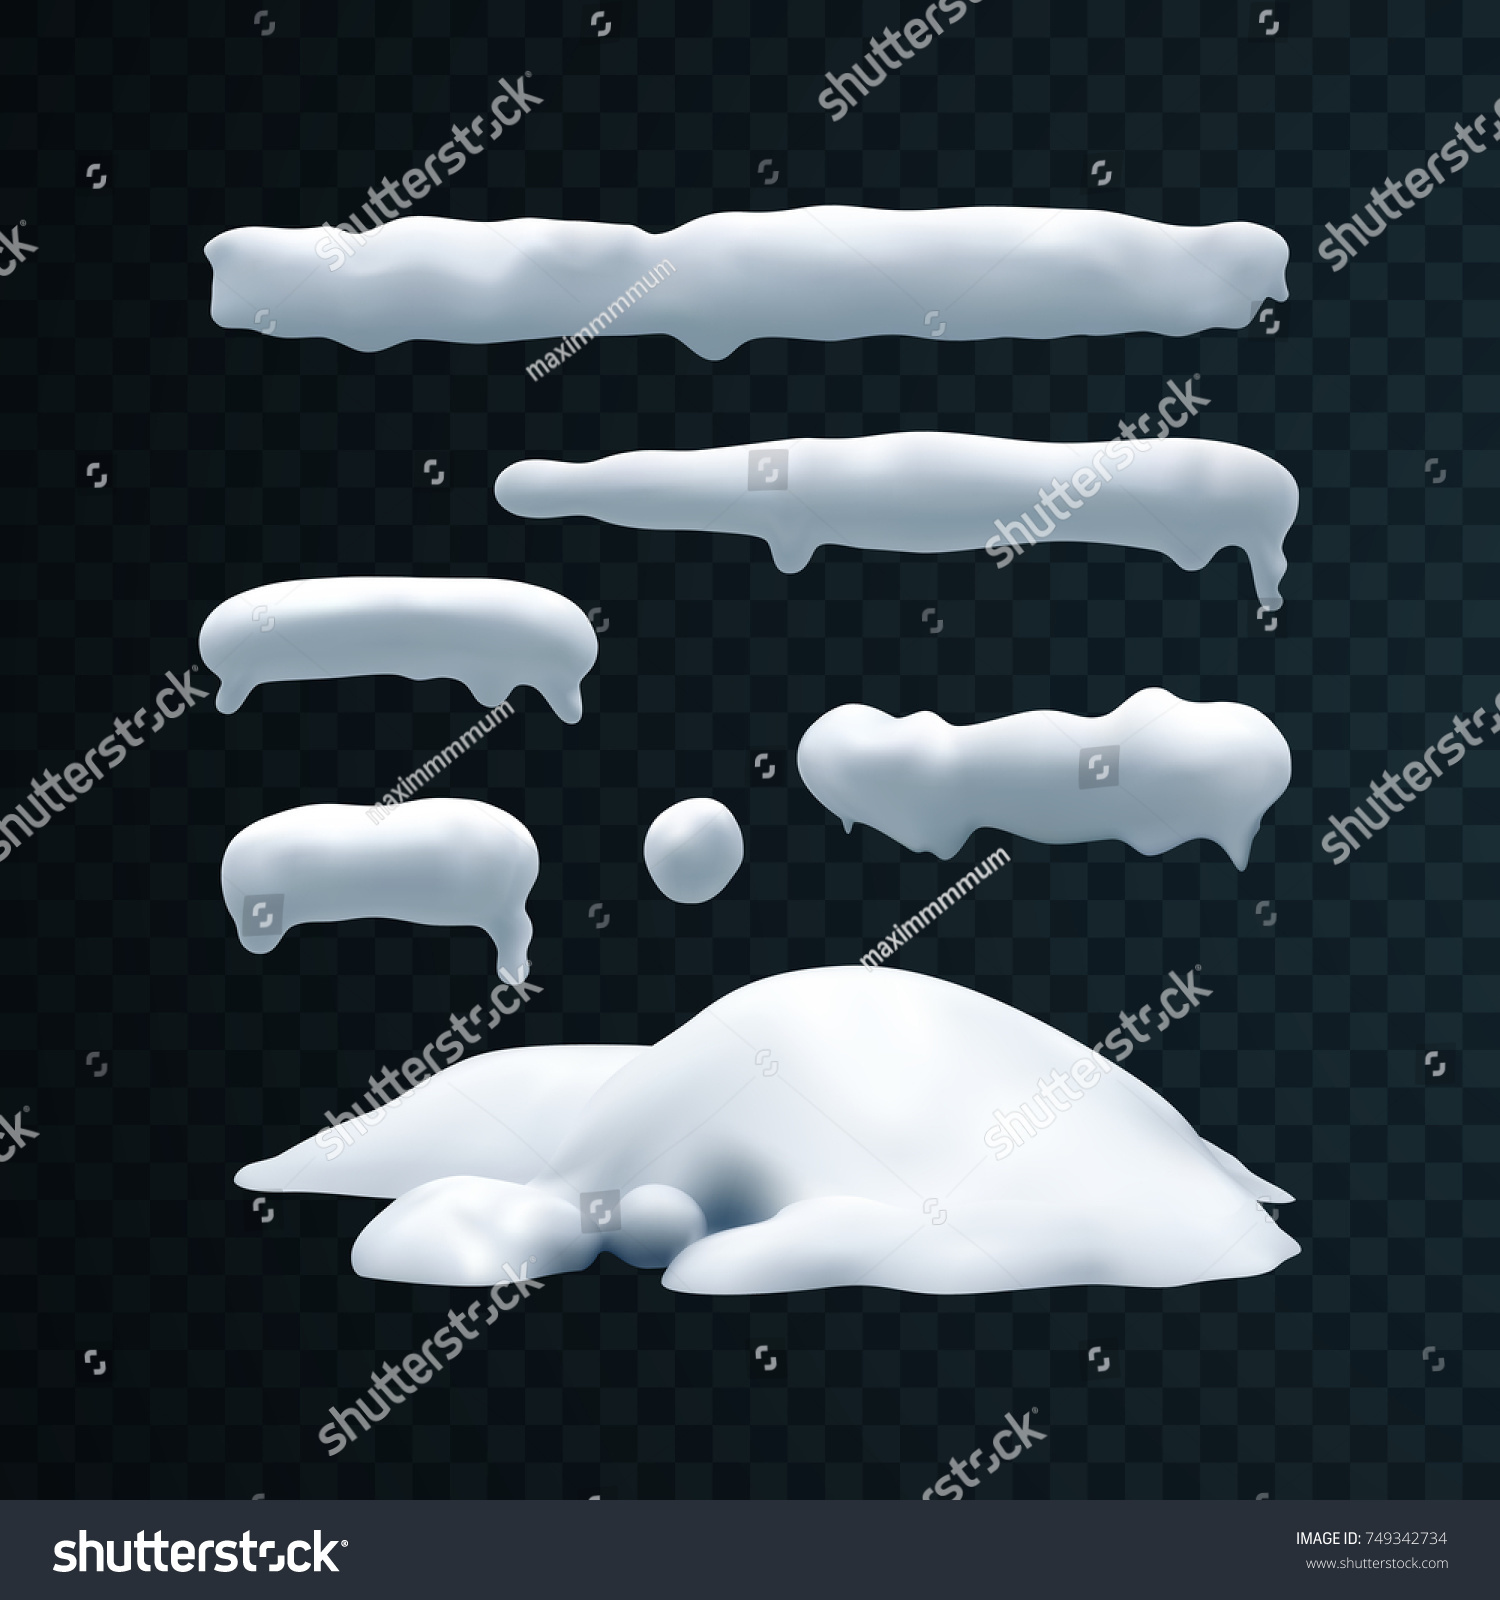 Vector set of snow caps, icicles, snowball and snowdrift isolated on transparent background. Winter decorations. Seasonal elements for design